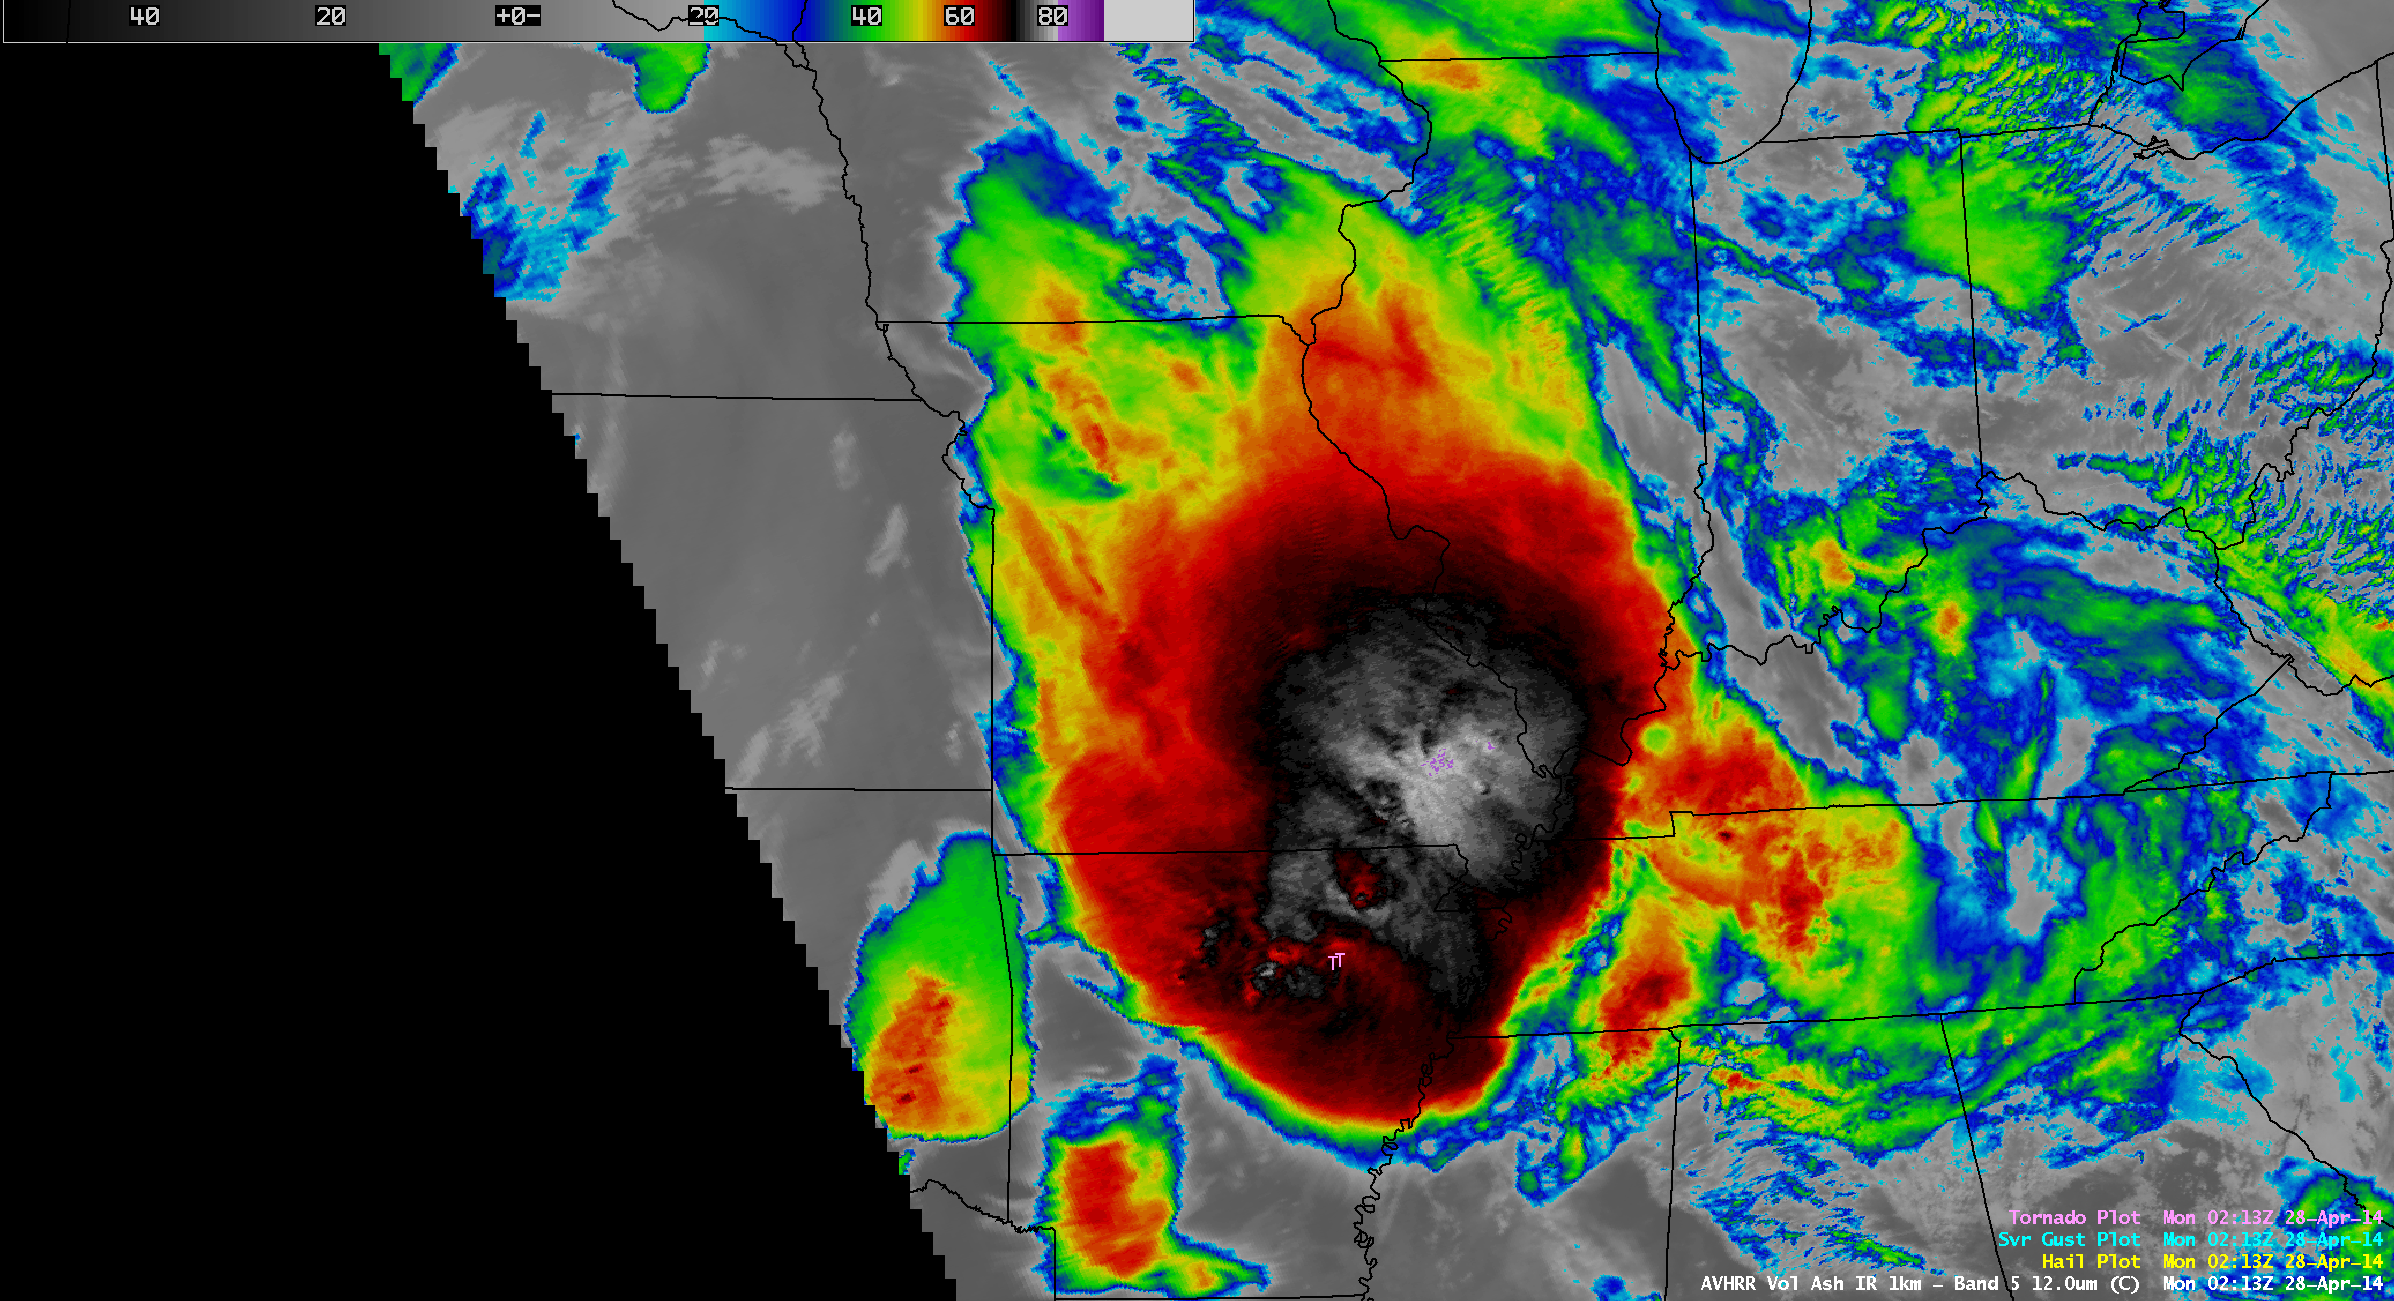 POES AVHRR 12.0 µm IR channel image, with overlay of SPC storm reports